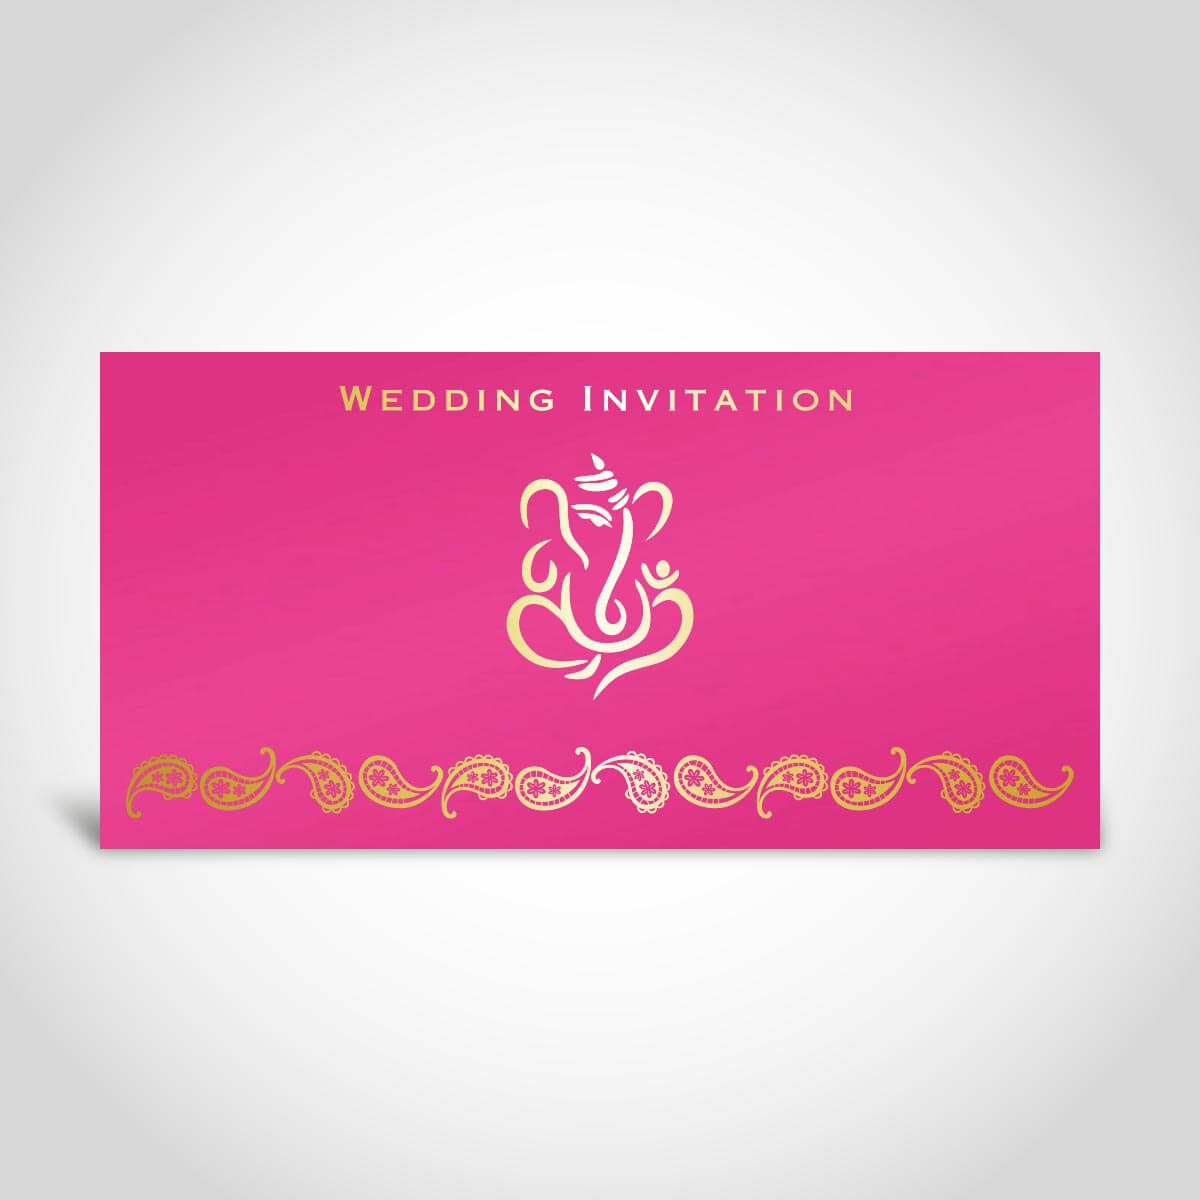 Luxury Indian Wedding Cards For Hindu Sikh And Muslim Weddings